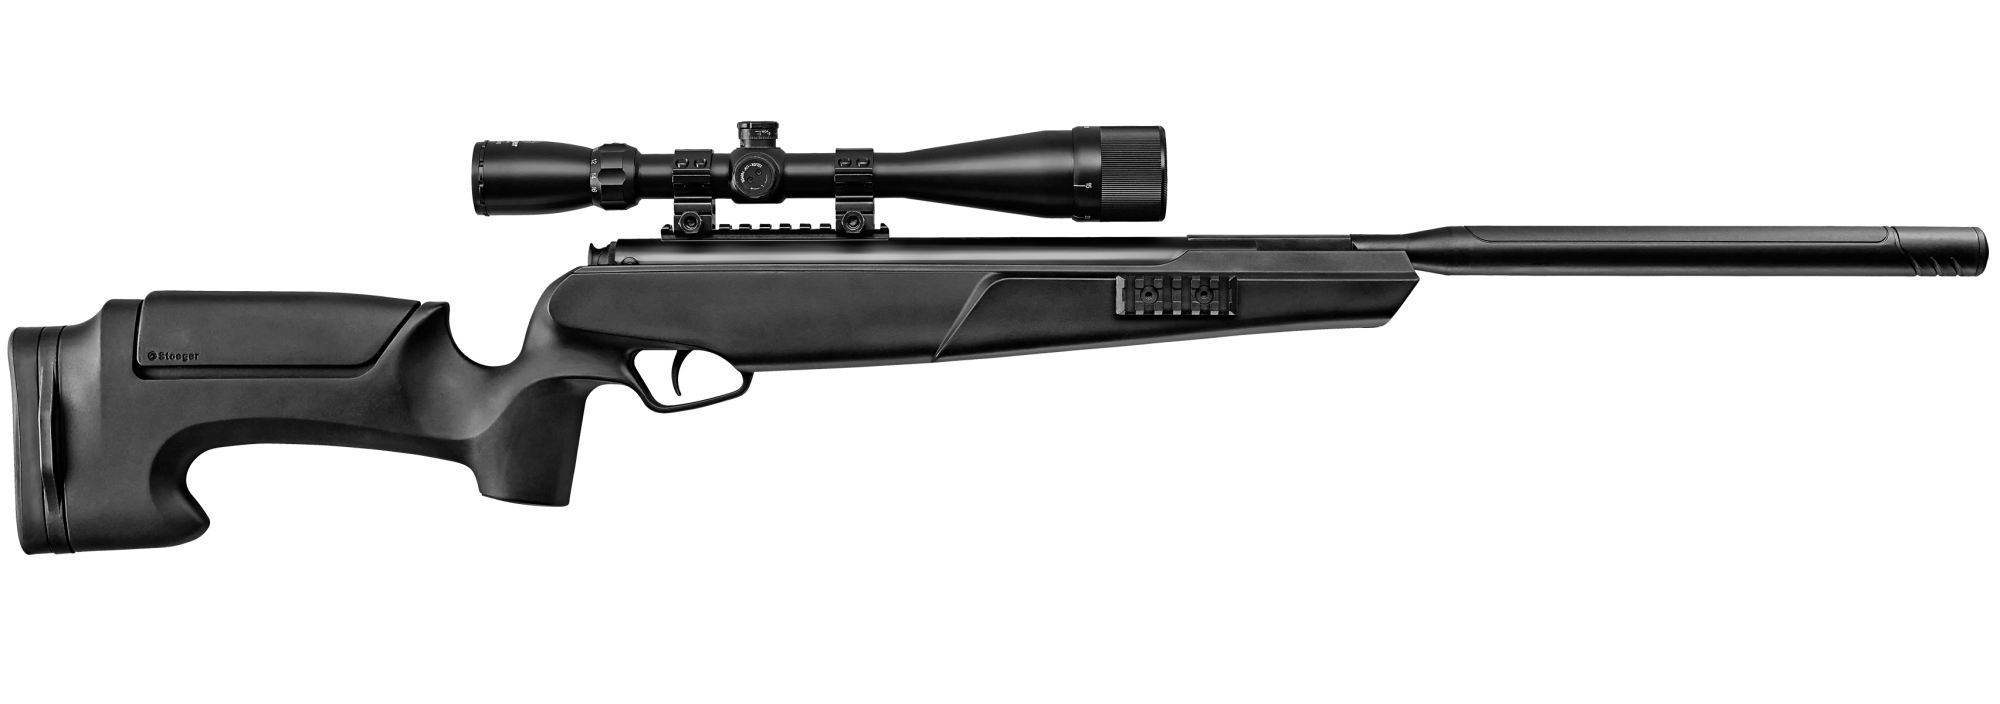 STOEGER X20 A-TAC Image